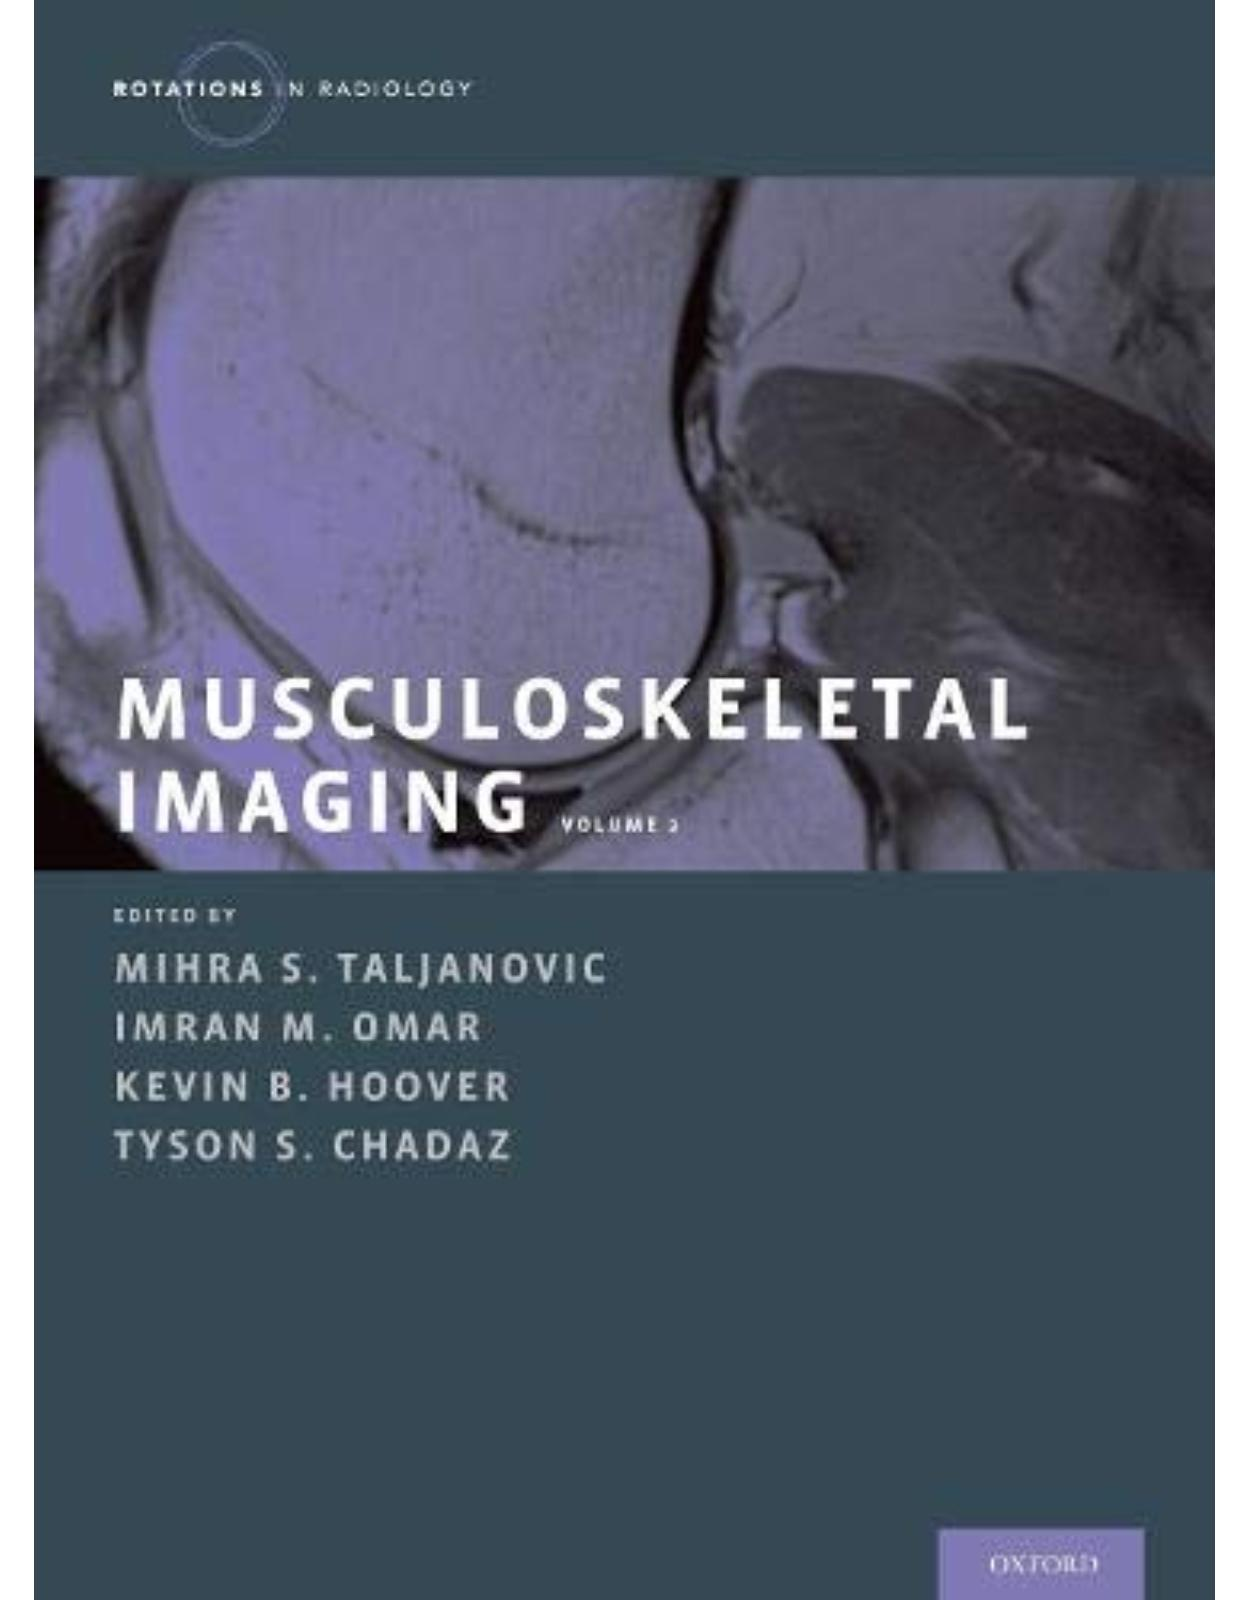 Musculoskeletal Imaging Volume 2: Metabolic, Infectious, and Congenital Diseases; Internal Derangement of the Joints; and Arthrography and Ultrasound (Rotations in Radiology)